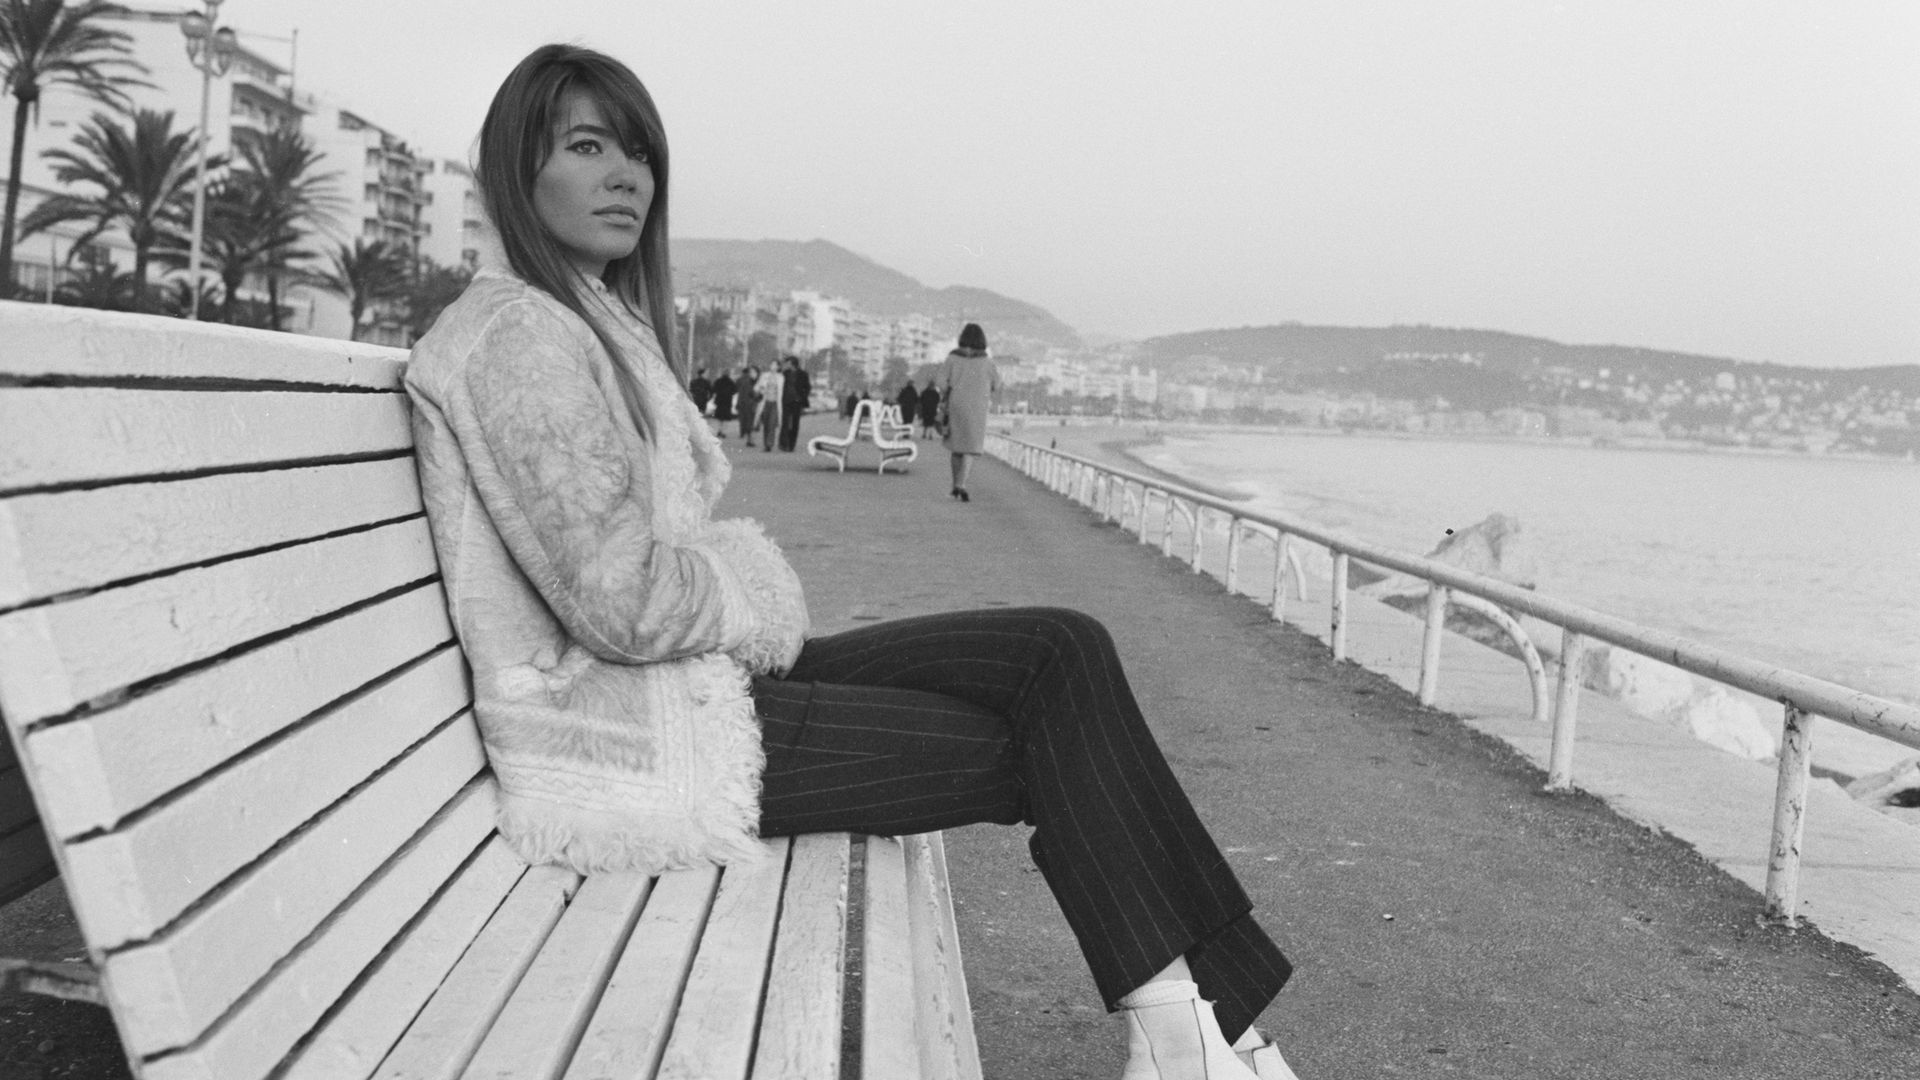 Francoise Hardy in Nice, in 1966 - Credit: Gamma-Rapho via Getty Images